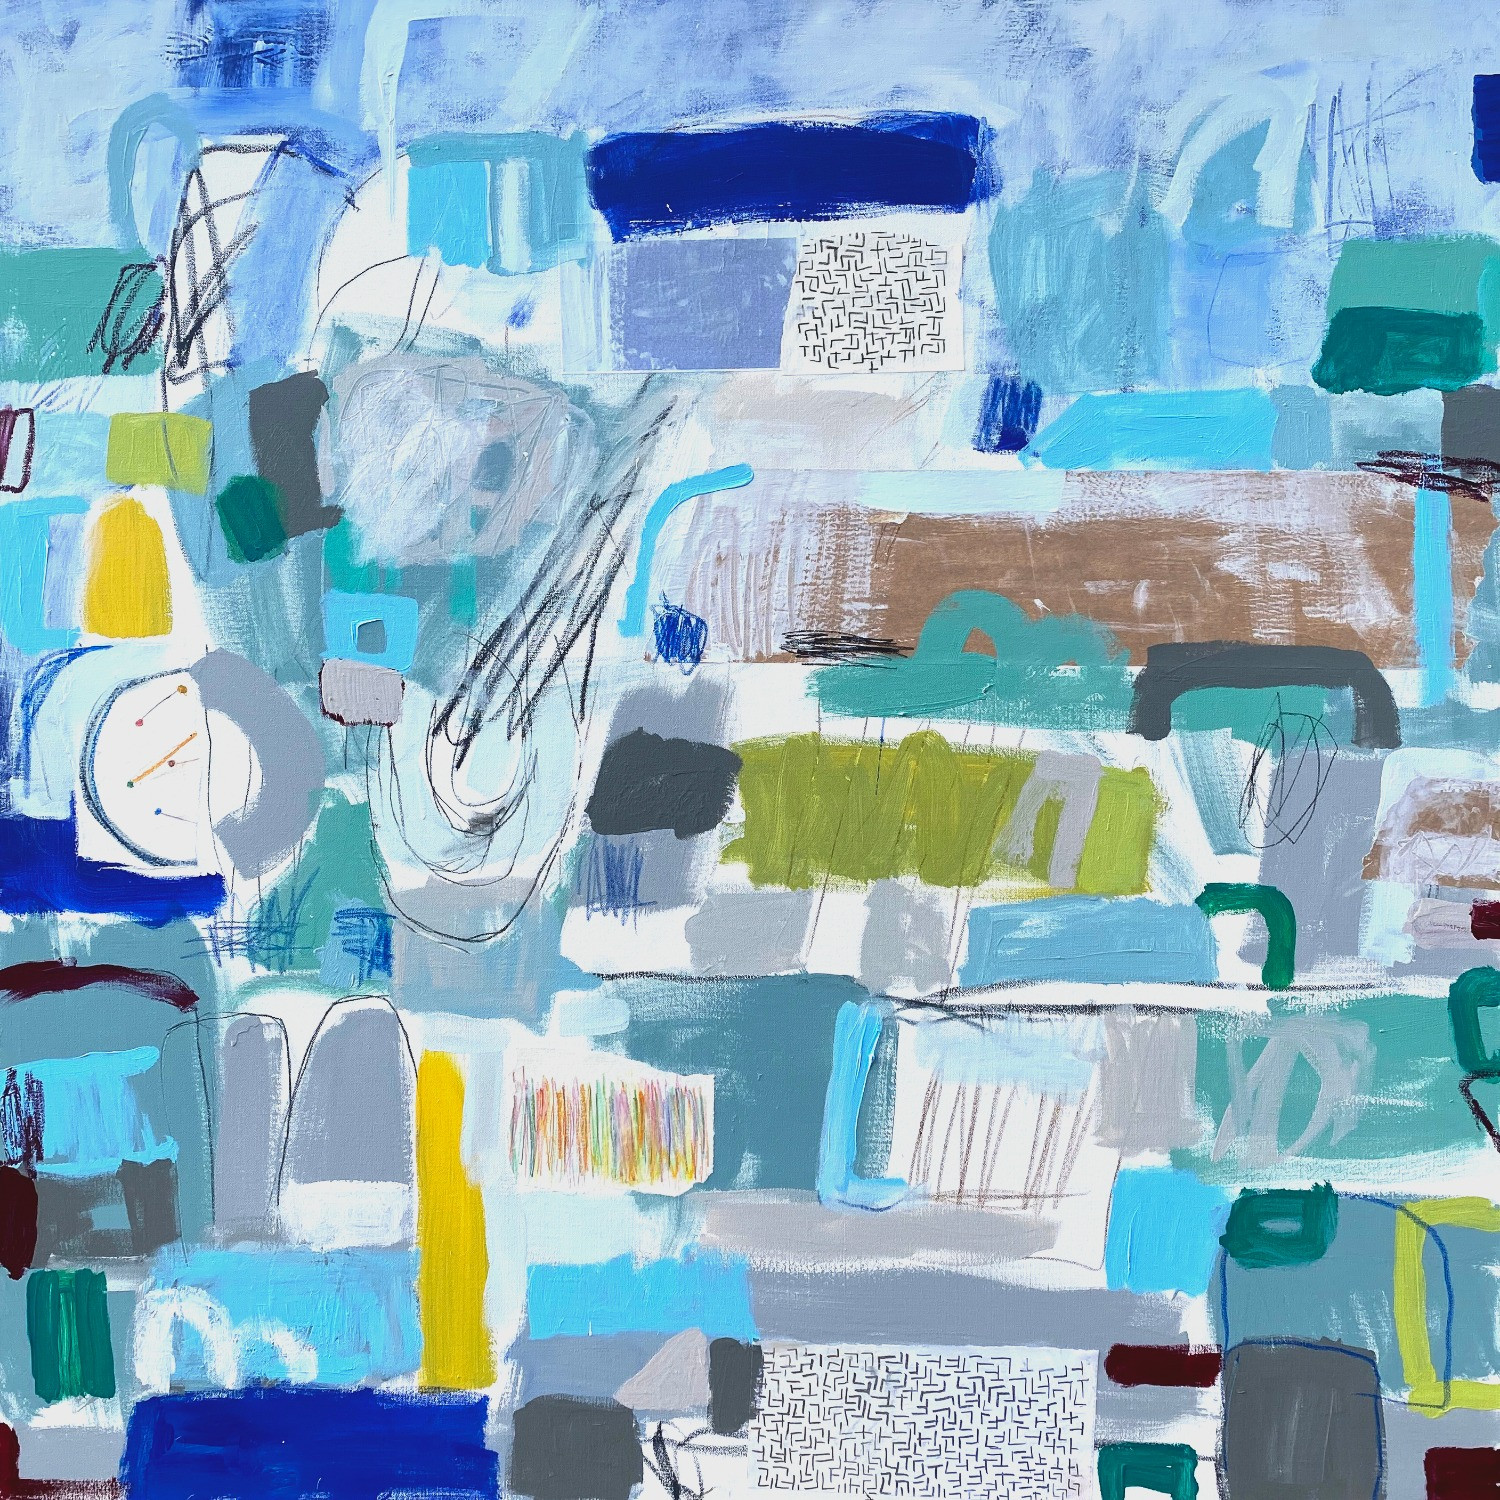 "Other Words for Blue #1, 48"" x 48"", mixed media on canvas, 2020"